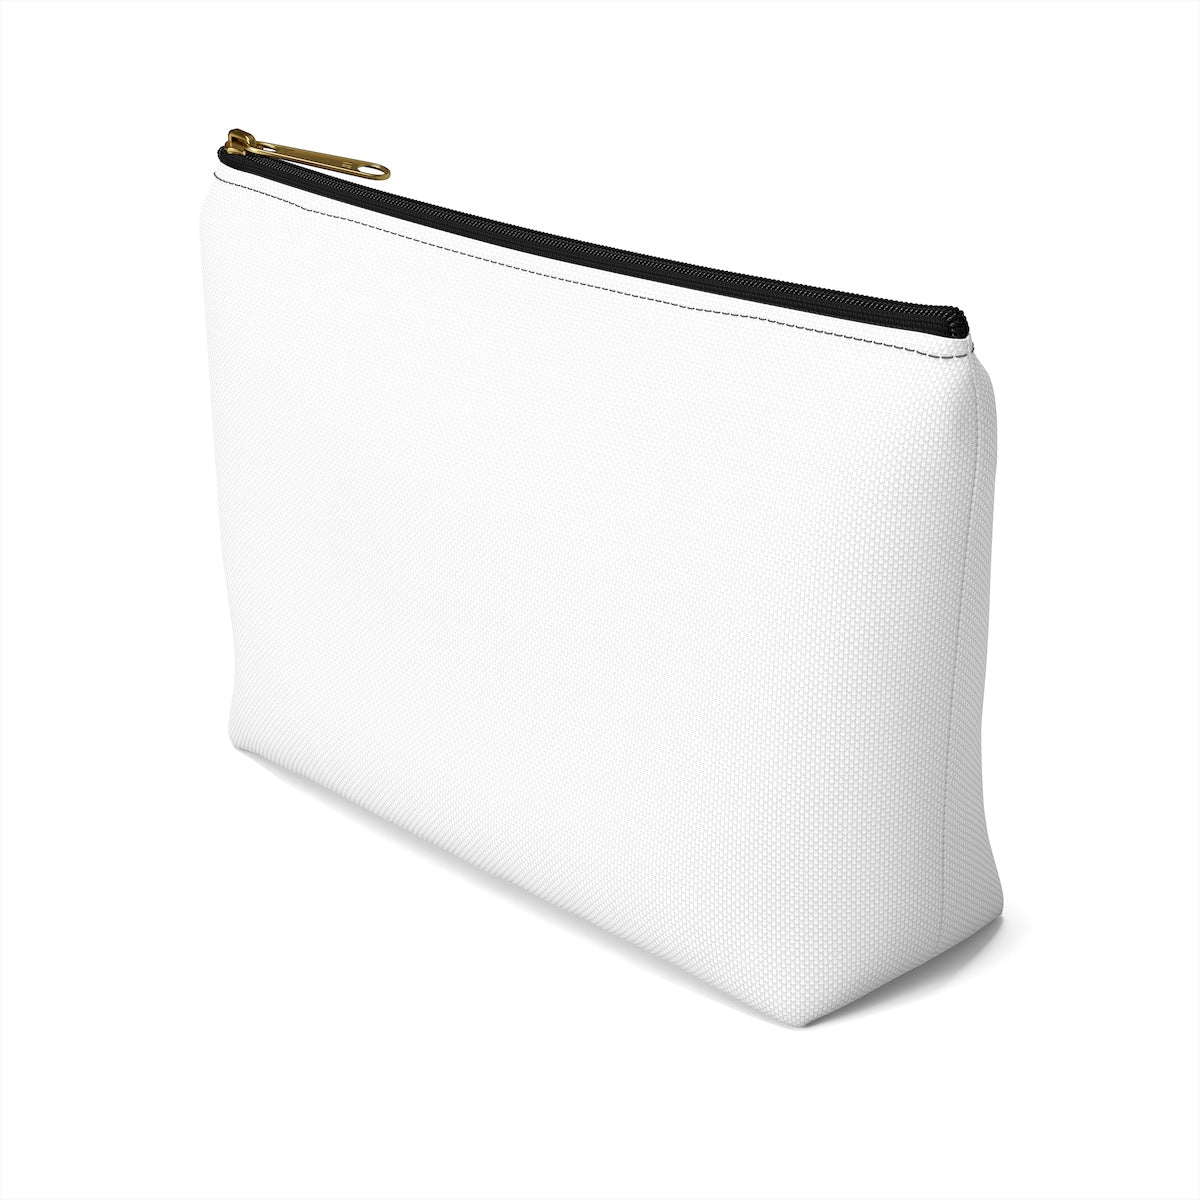 Customizable Accessory Pouch with T-bottom